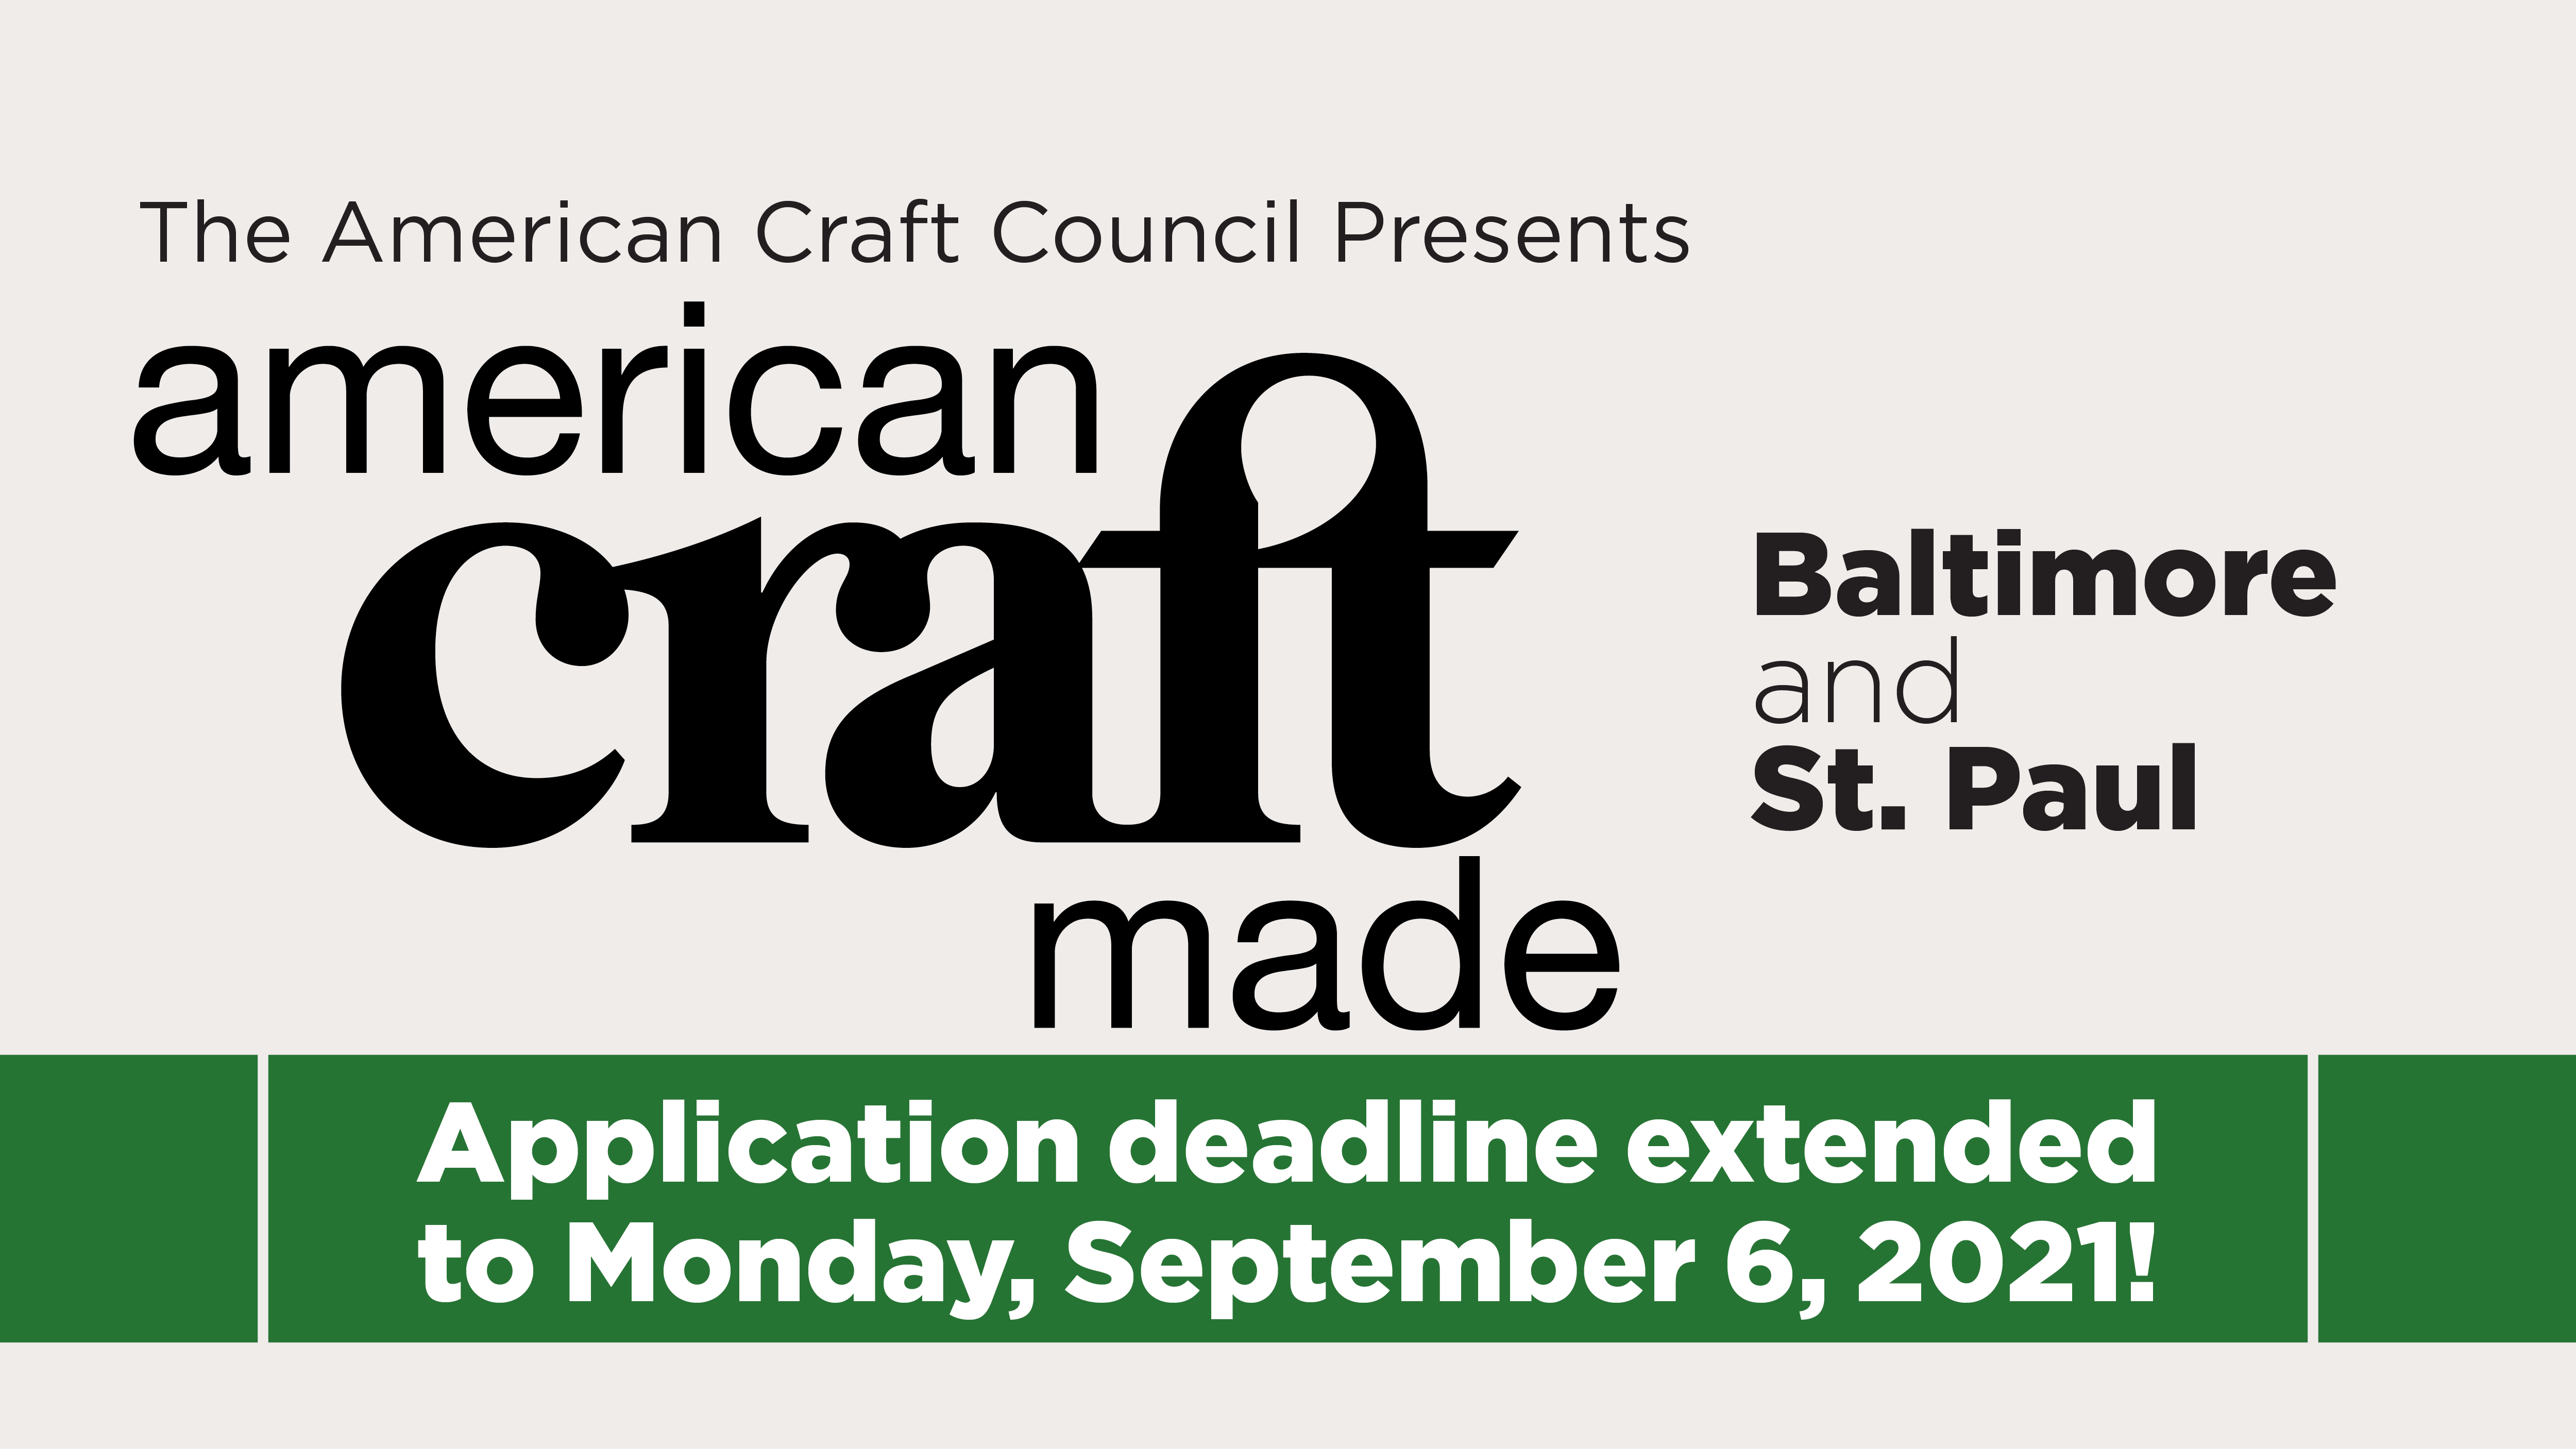 The American Craft Council Presents American Craft Made Baltimore and St Paul Application Deadline Extended to September 6 2021